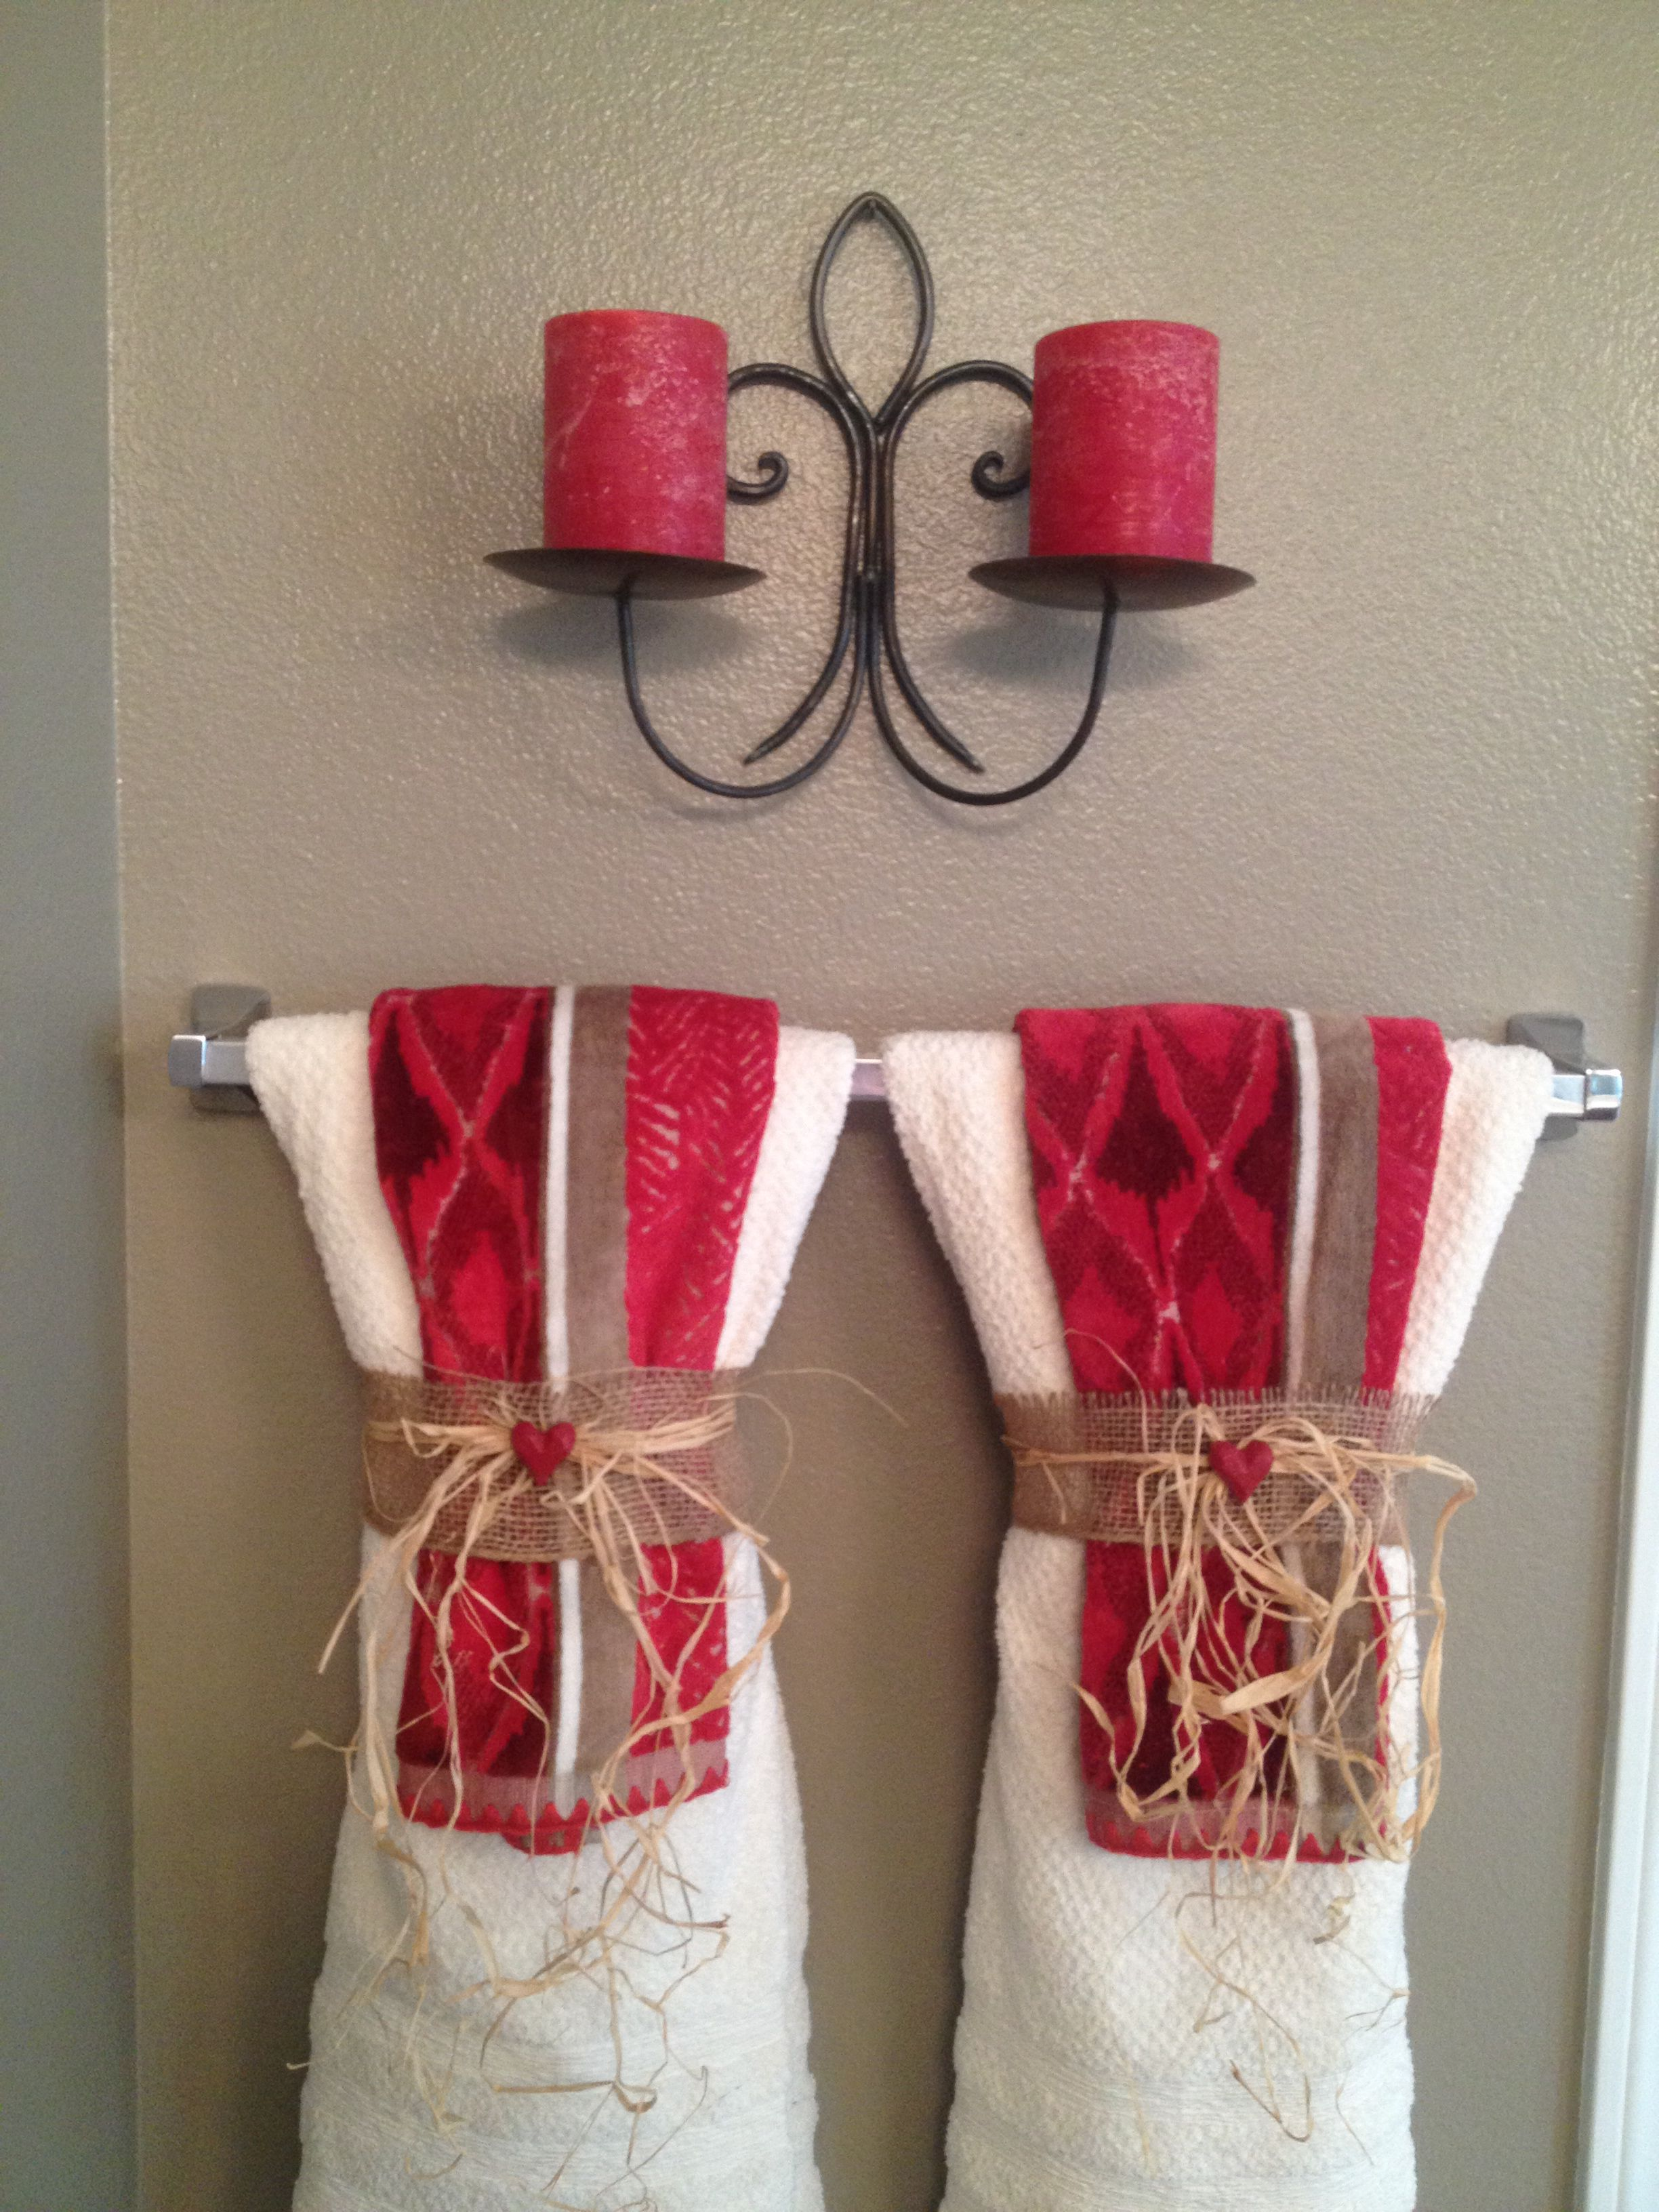 Towel Display Chicago Pinterest Towel Display Towels And - Red decorative towels for small bathroom ideas